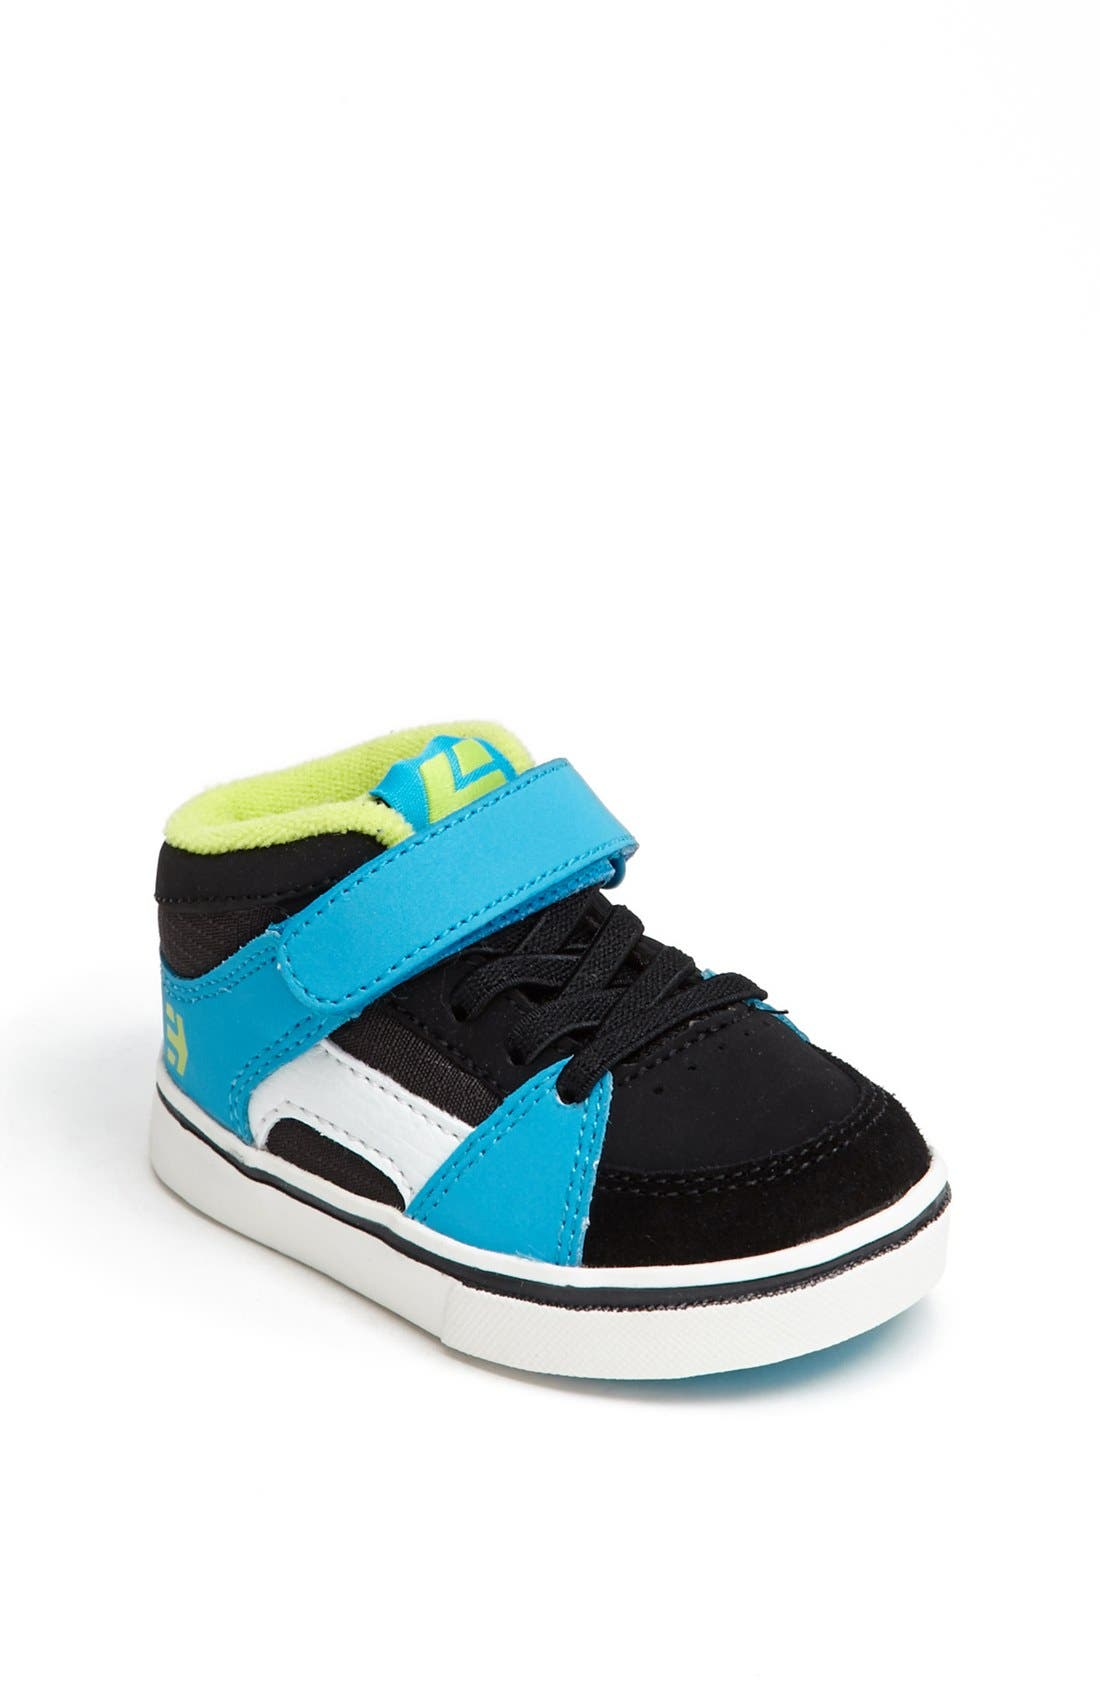 Alternate Image 1 Selected - Etnies 'RVM' Strap Sneaker (Walker & Toddler)